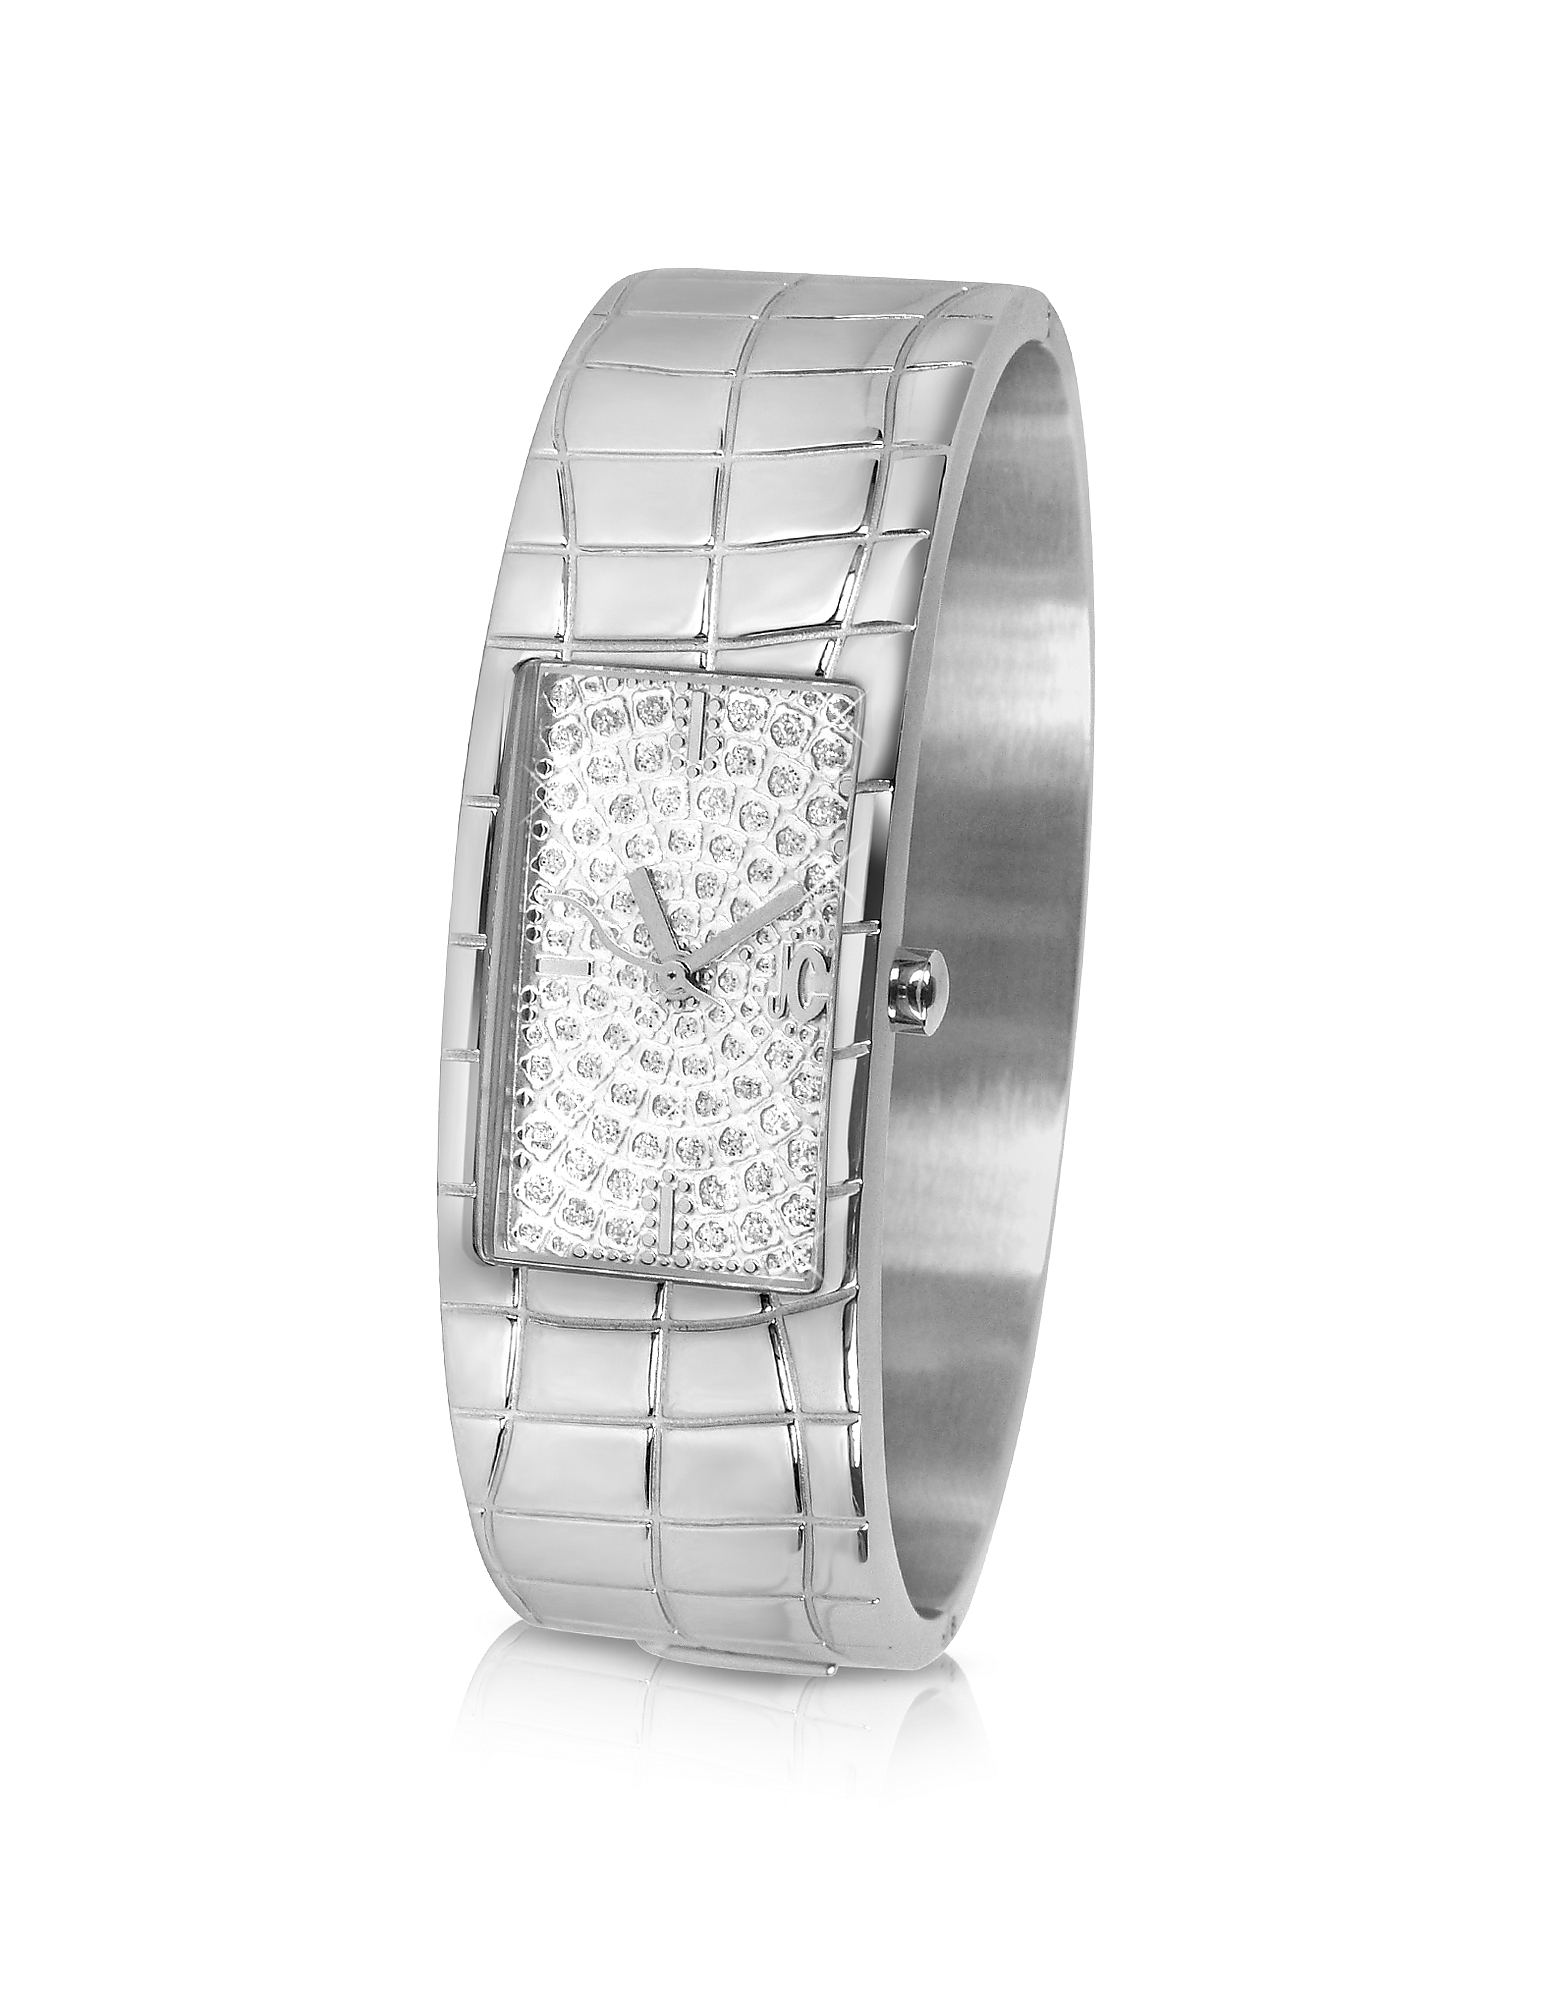 Image of Just Cavalli Designer Women's Watches, Circum - Silvered Dial Stainless Steel Large Cuff Watch